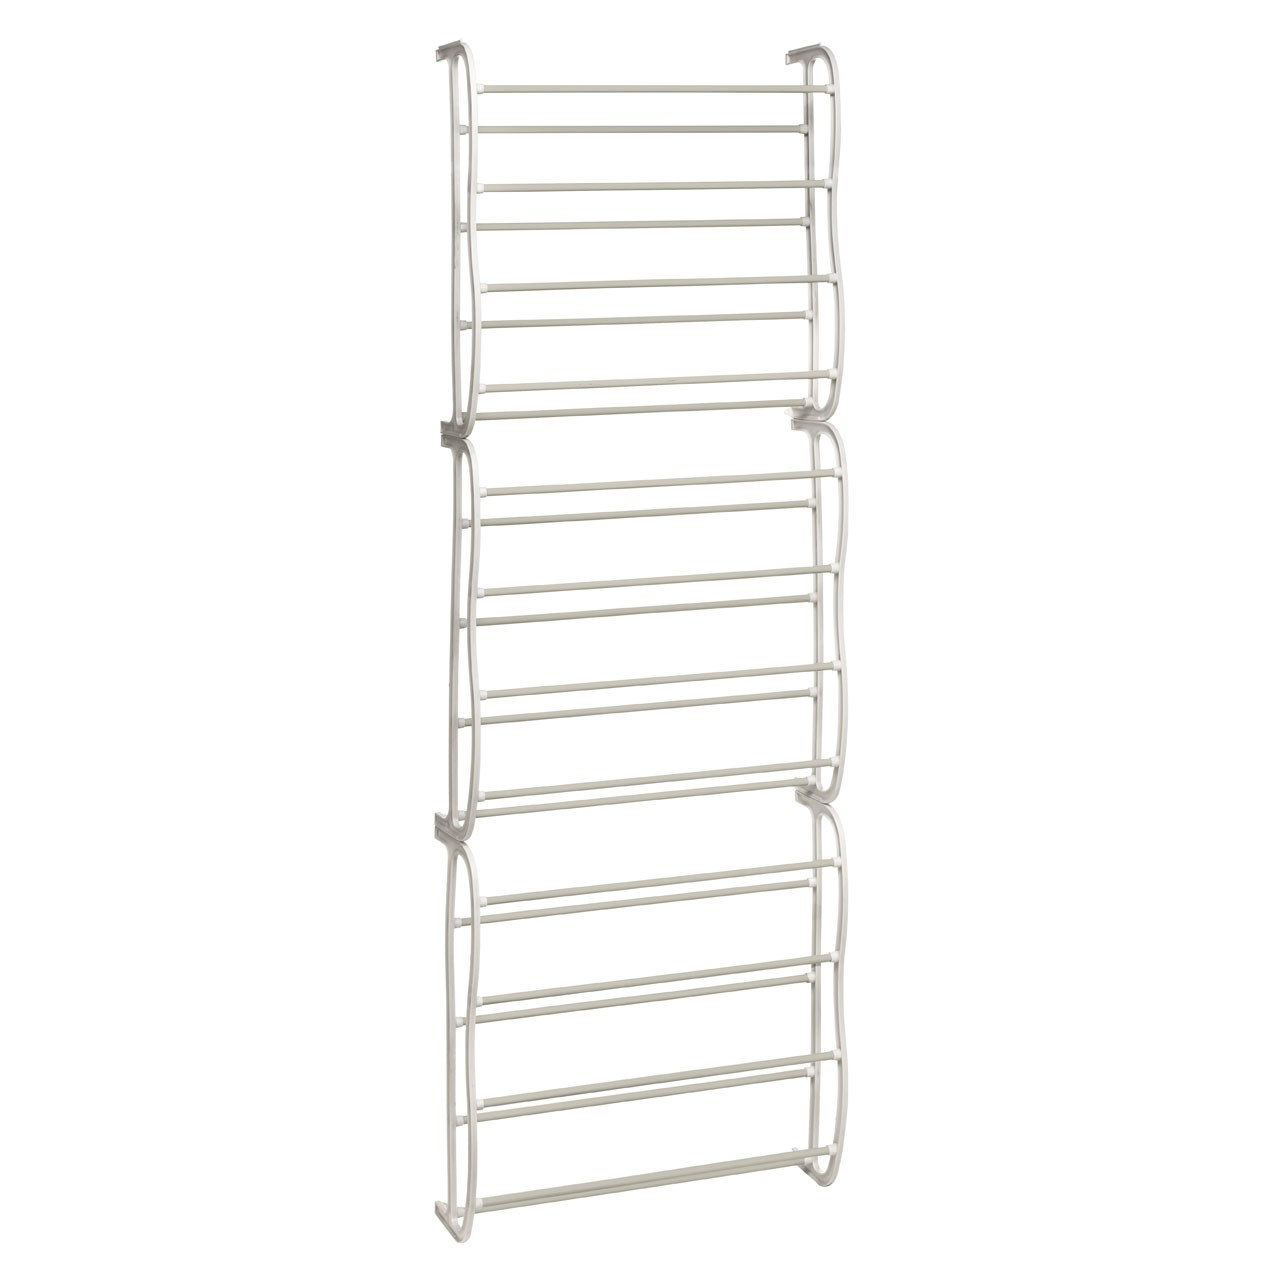 Prime Furnishing 12 -Tier Over Door Shoe Rack, White